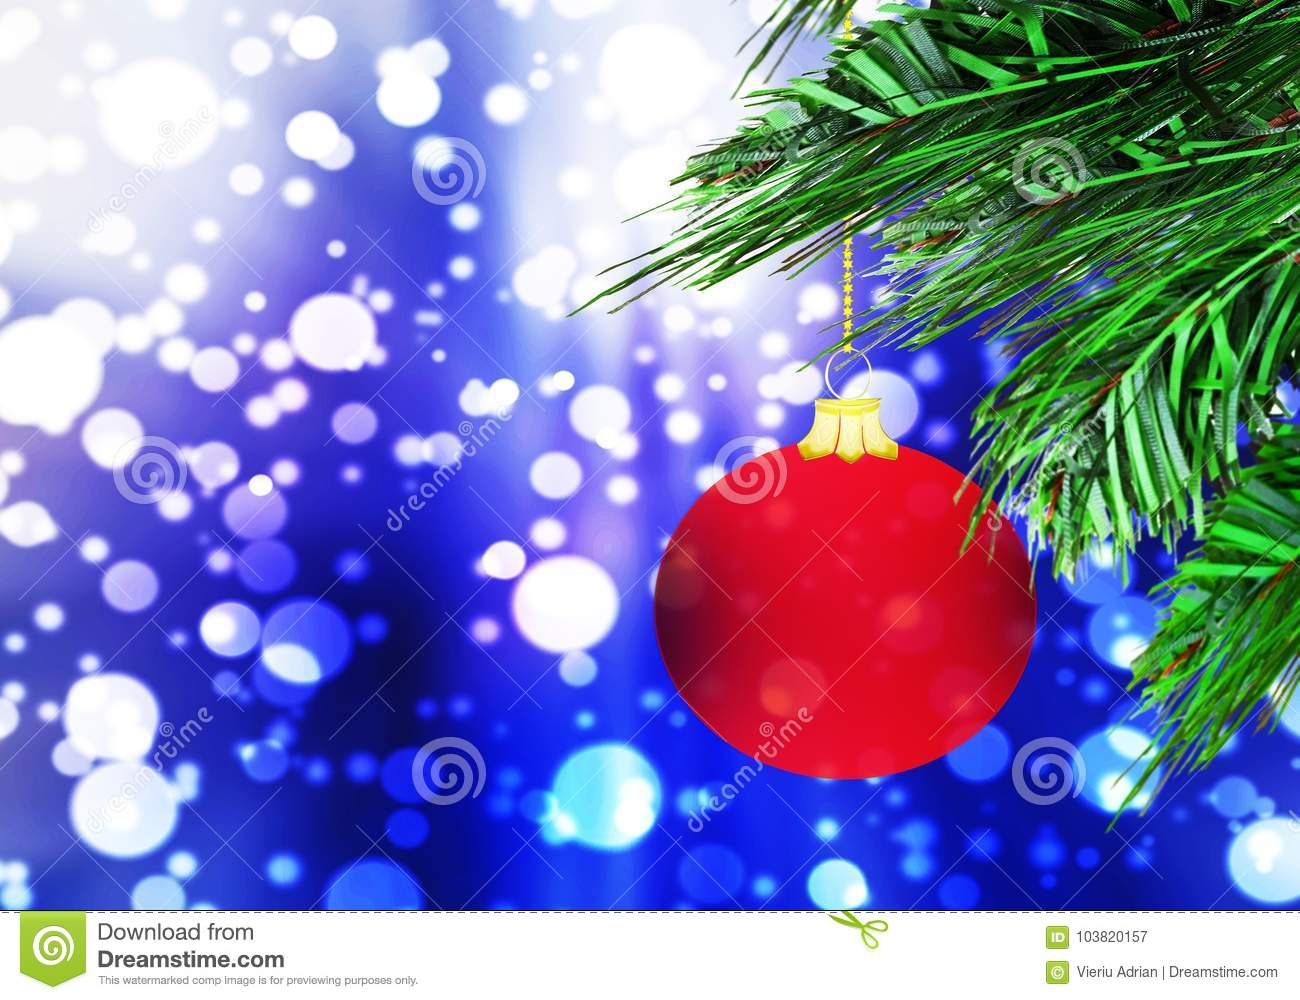 Background Abstract Sport Volleyball Blue Yellow Ball: Red Christmas Ball Background Blue Snow Circles Stock